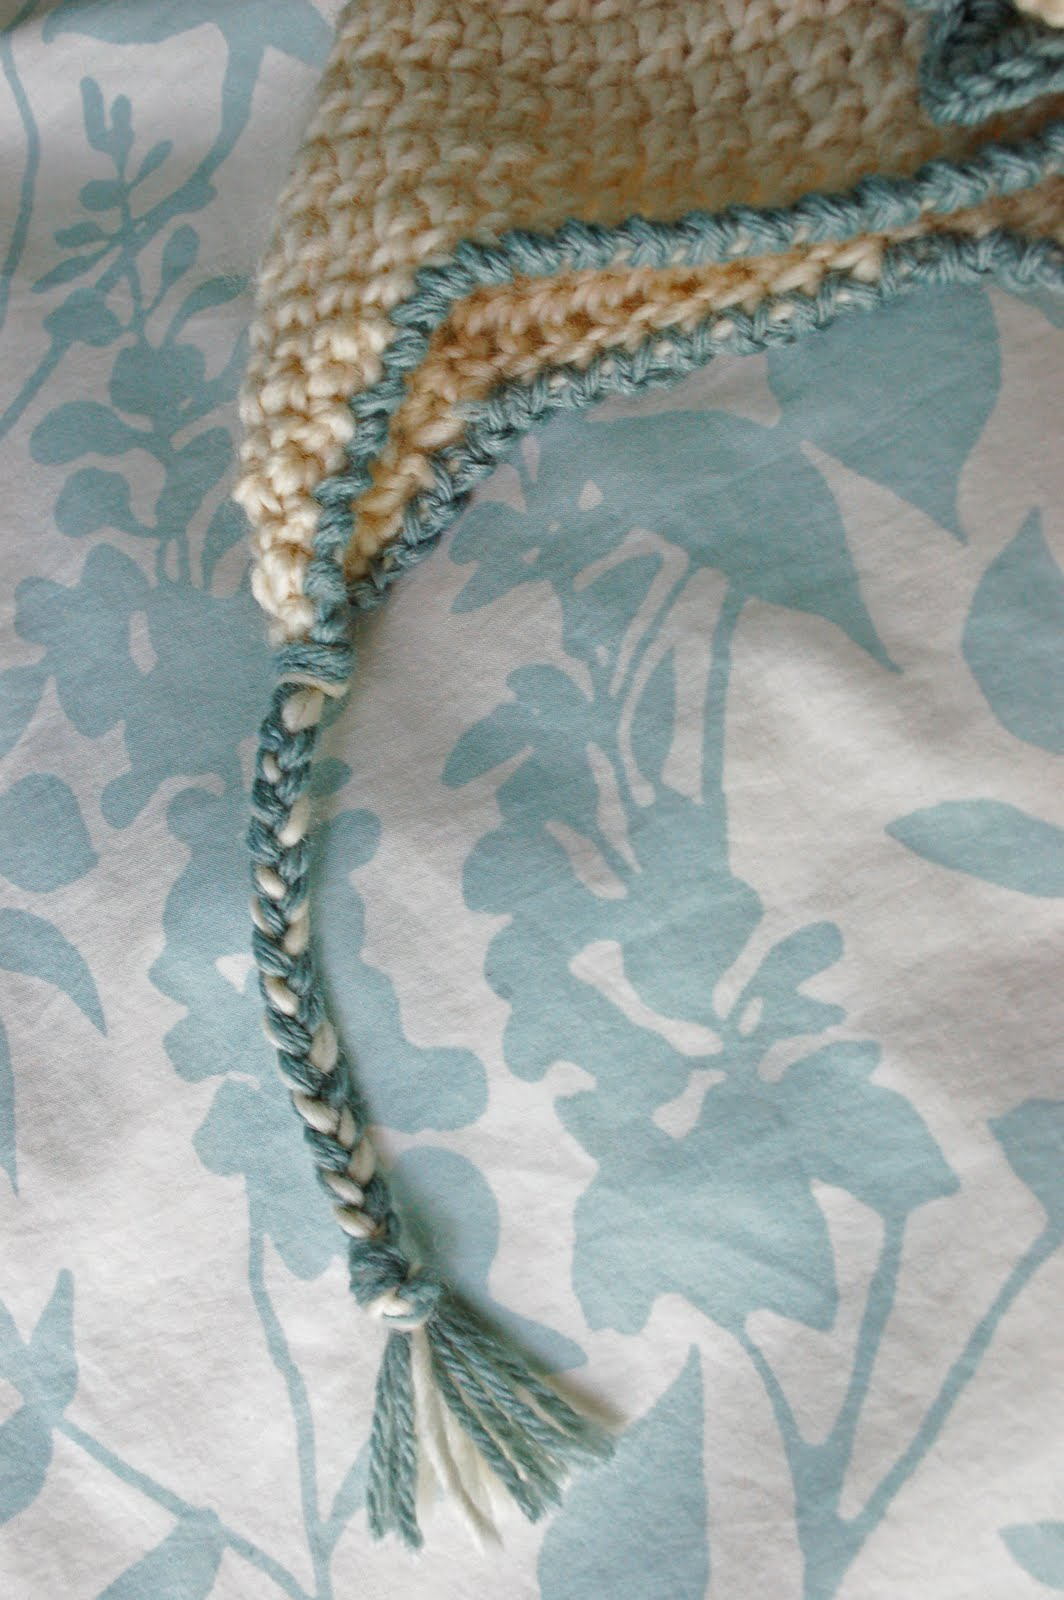 Alli crafts free pattern baby earflap hat newborn free pattern baby earflap hat newborn bankloansurffo Images